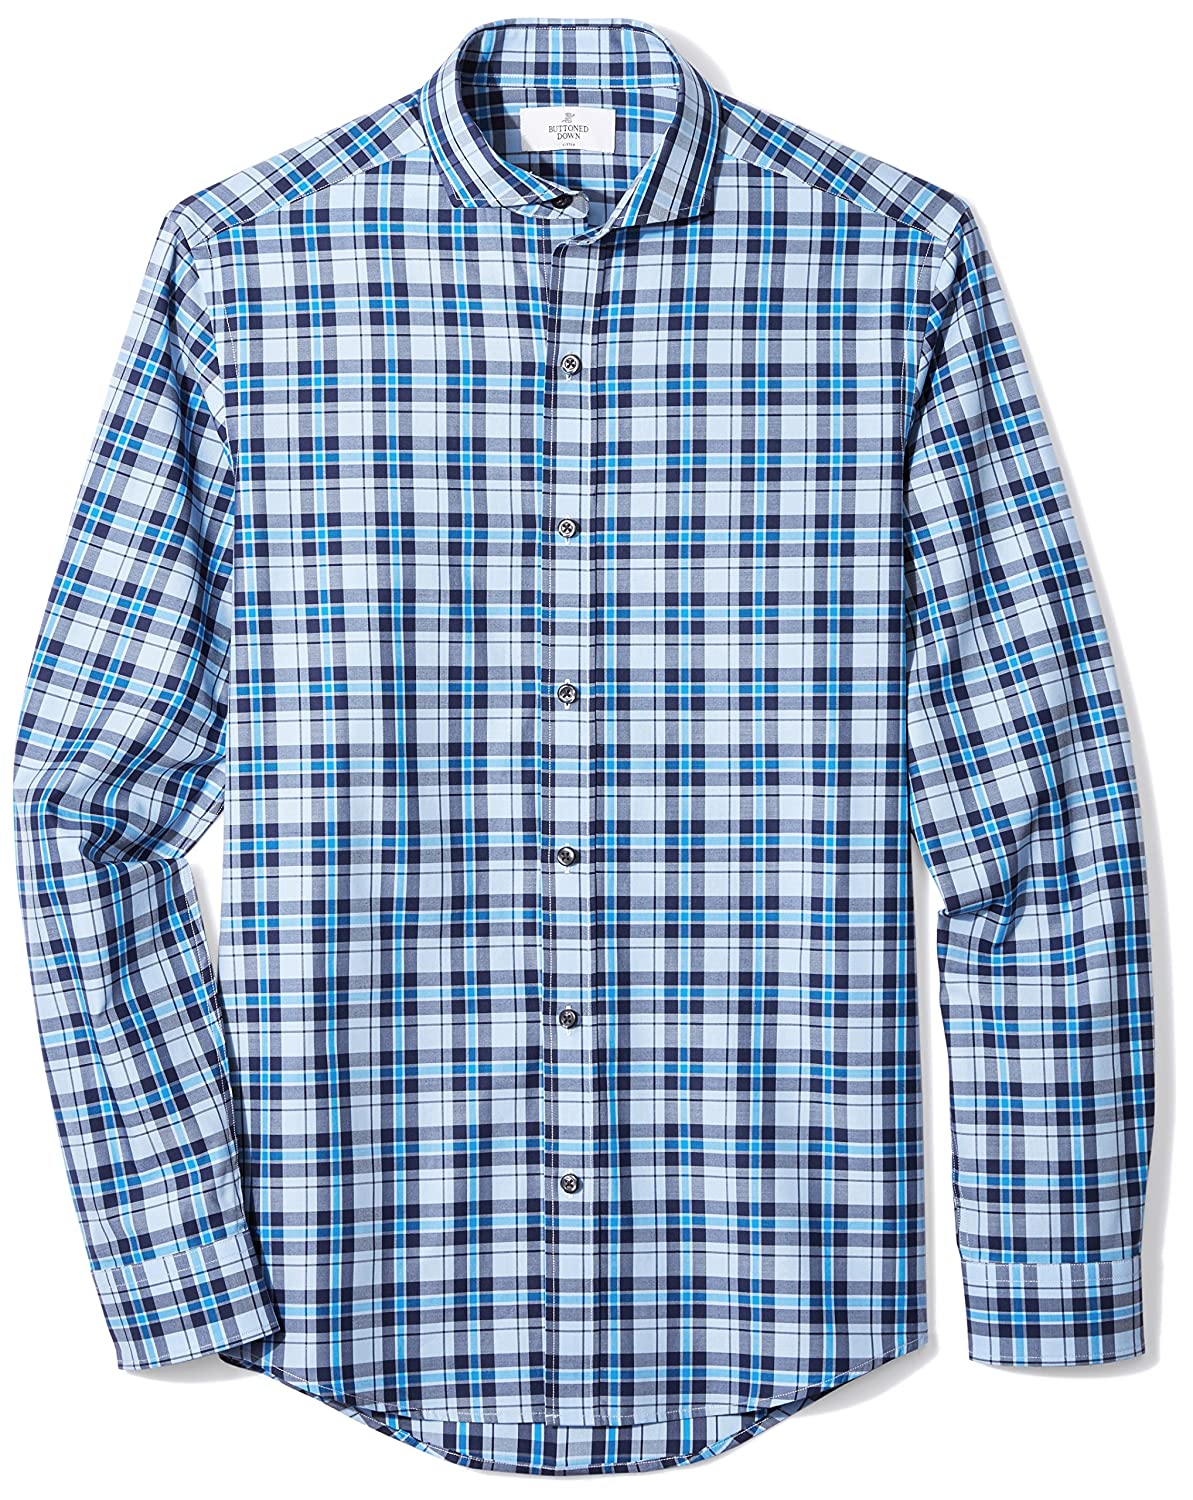 Buttoned Down Men's Fitted Supima Cotton Sport Shirt (3 Collars Available) MBD25008